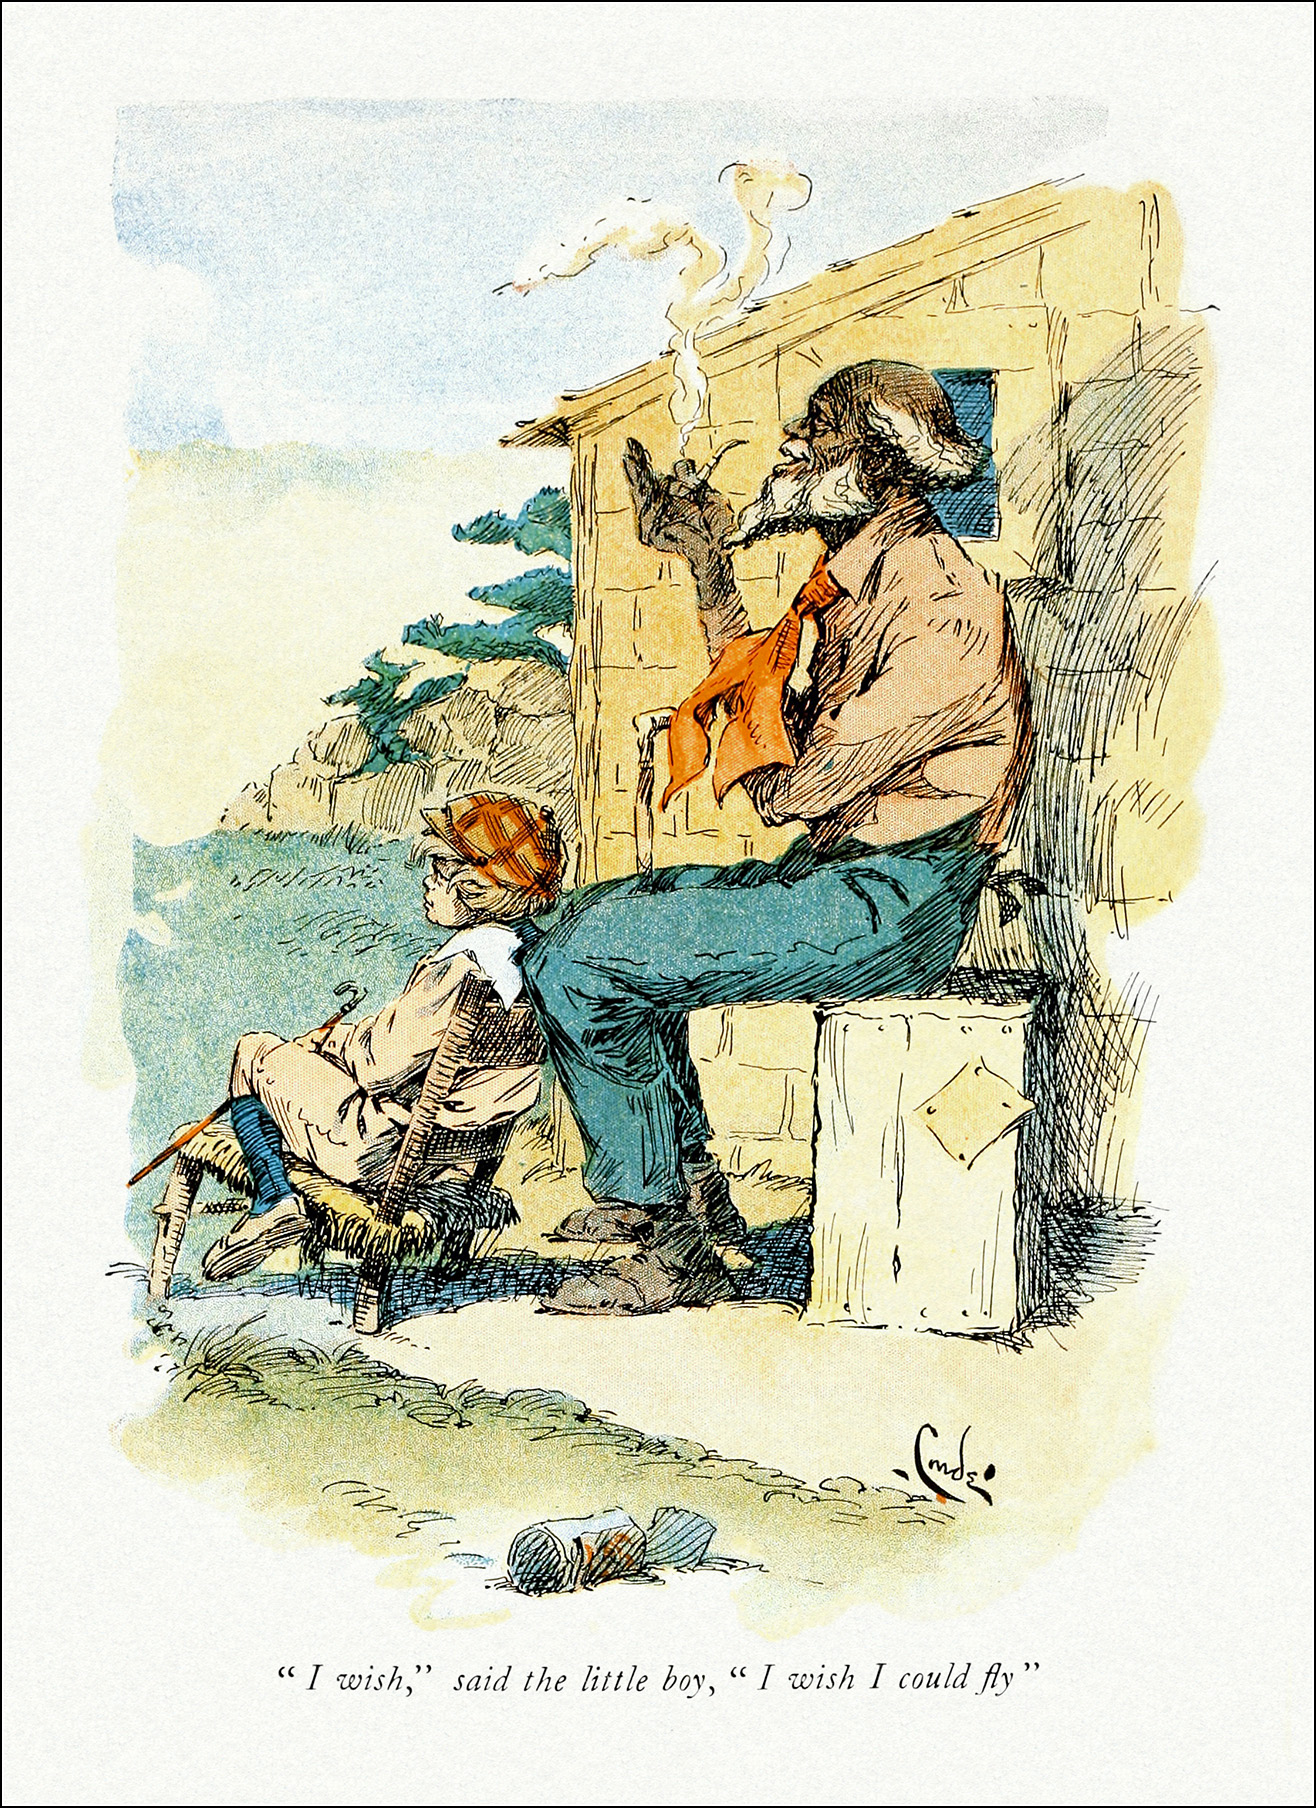 Uncle Remus and the Little Boy, J. M. Conde